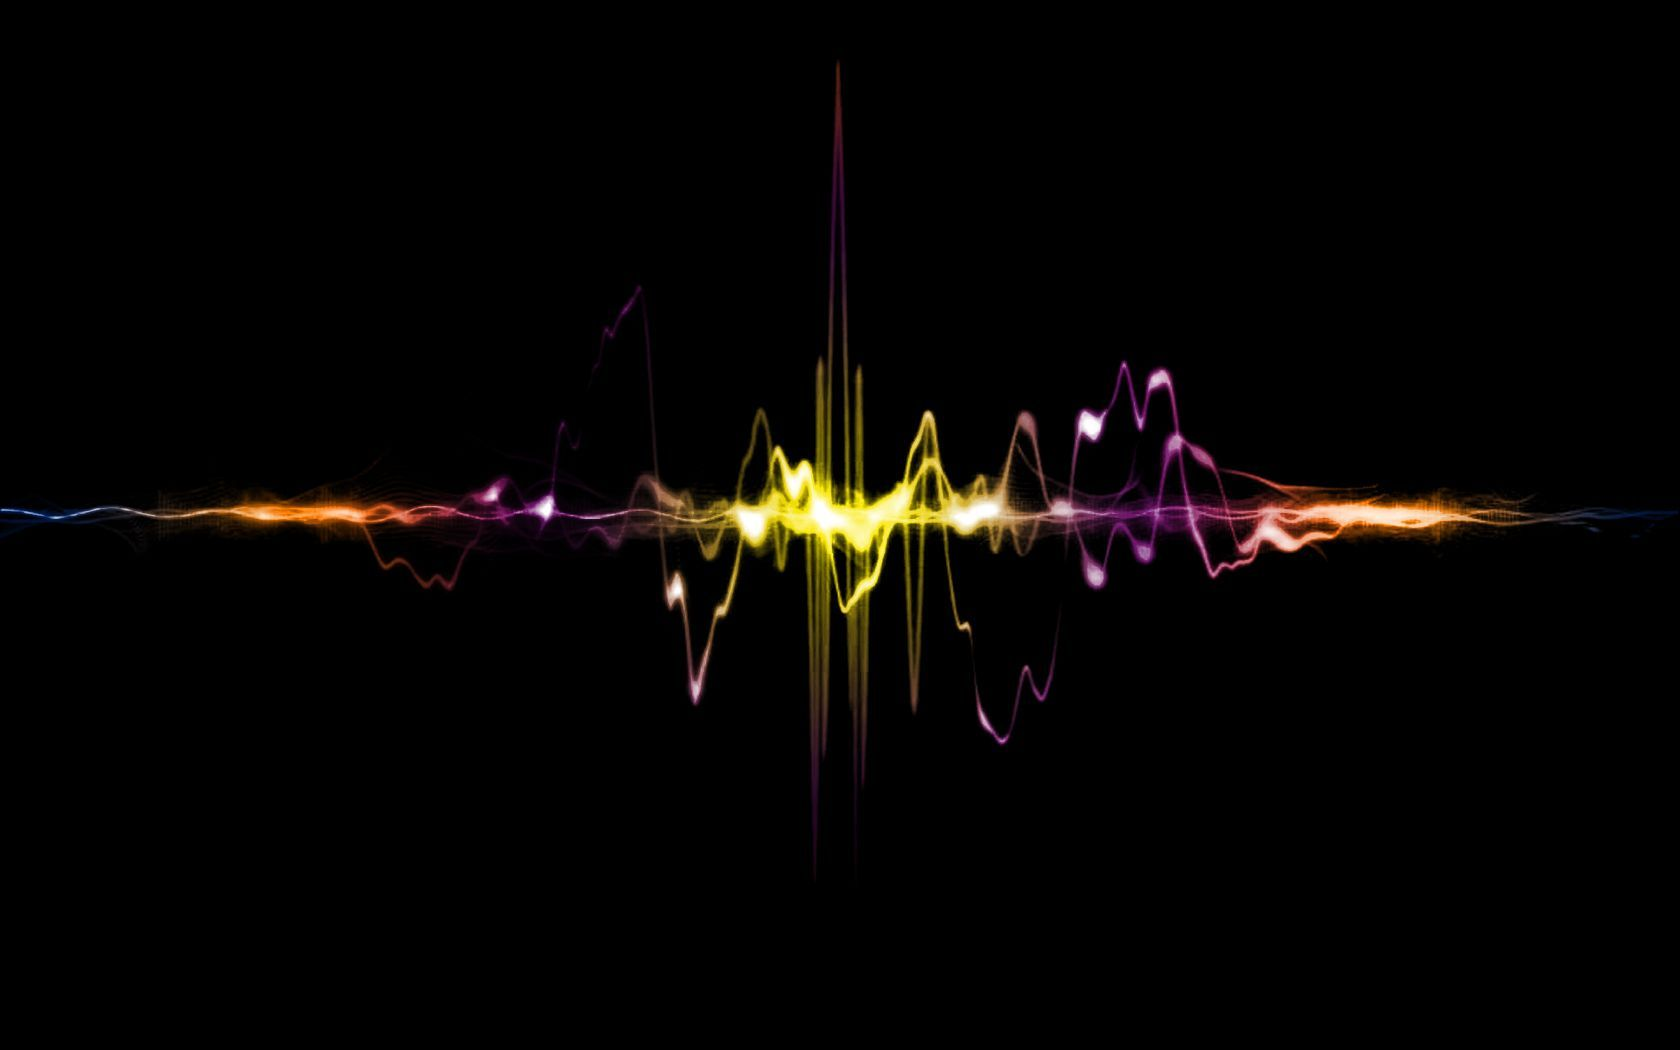 Sound Wave Wallpaper Photo 21590 Hd Pictures Best Wallpaper Photo Waves Wallpaper Background Hd Wallpaper Background Images Wallpapers